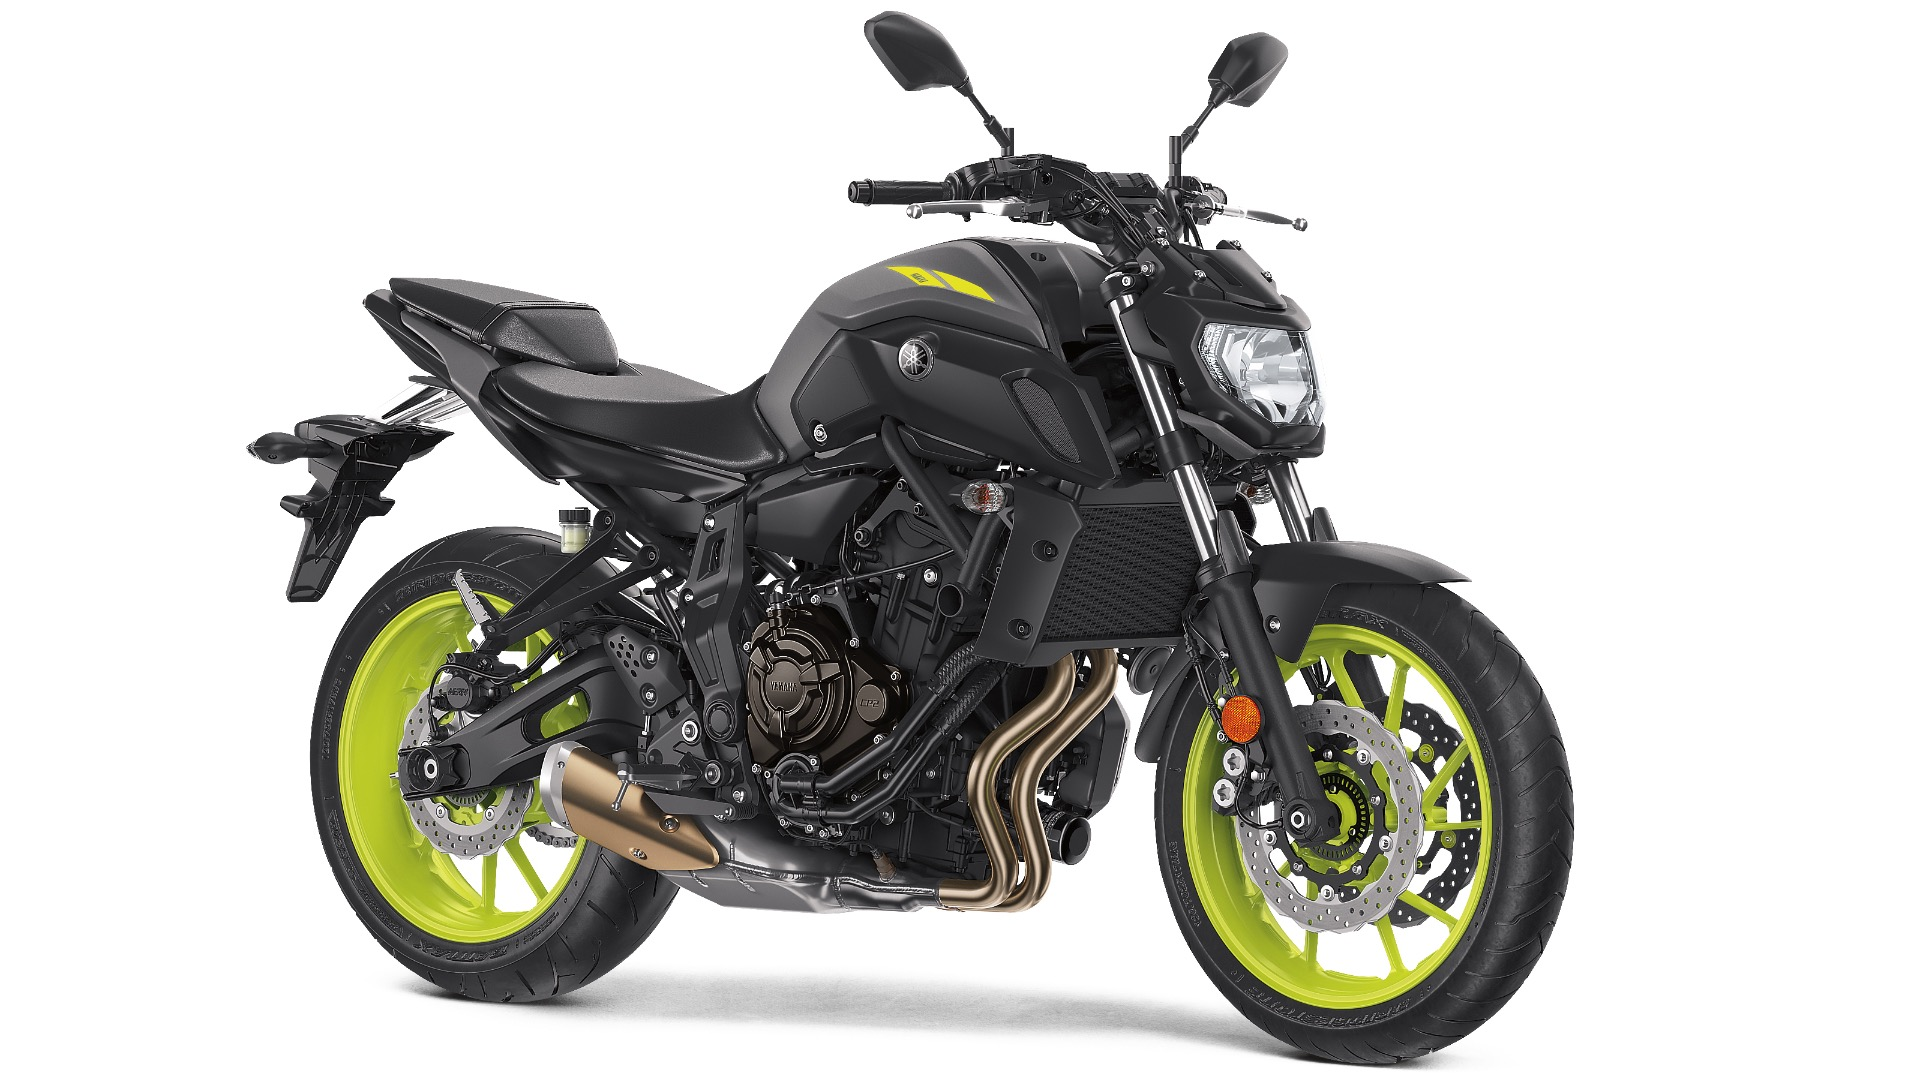 2018 Yamaha MT-07 First Look - Black 3/4